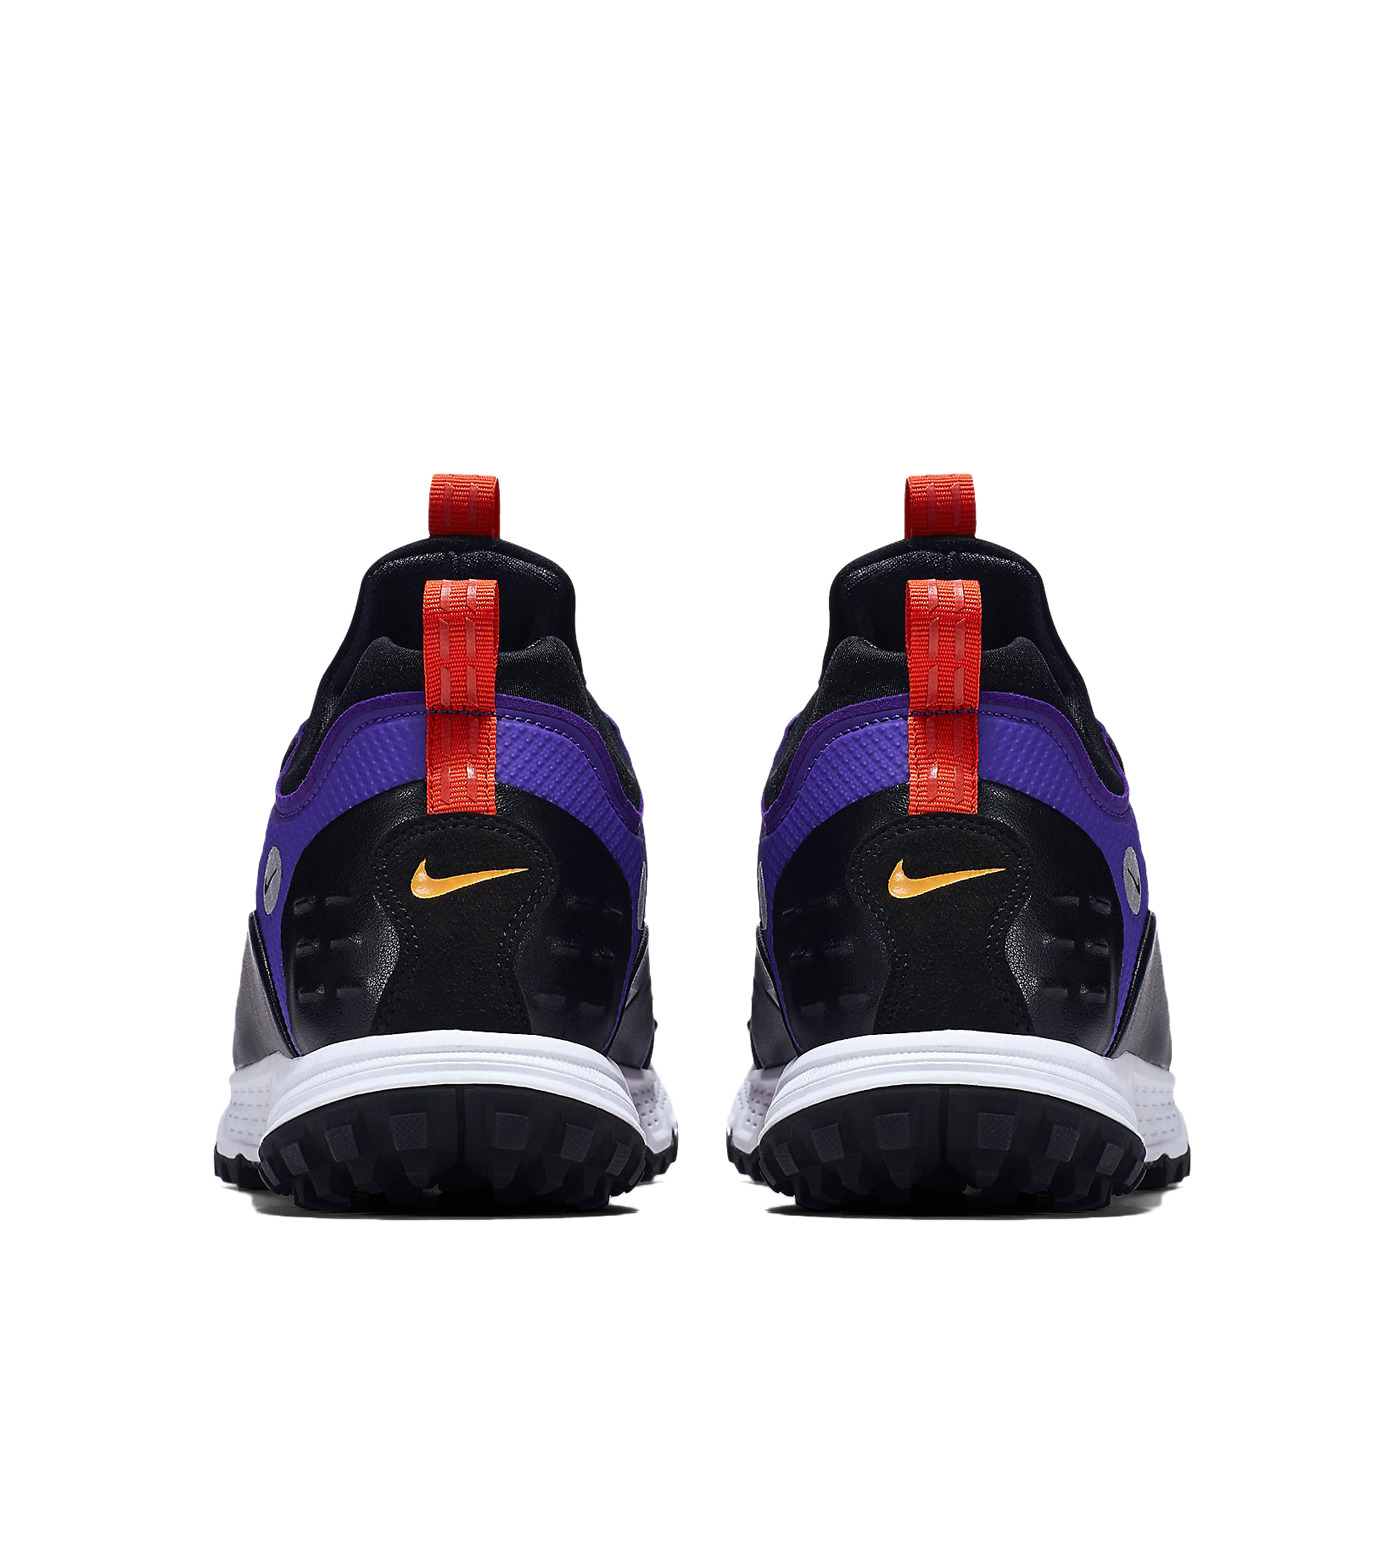 NIKE(ナイキ)のAIR ZOOM ALBIS '16-BLUE(シューズ/shoes)-904334-002-92 拡大詳細画像5